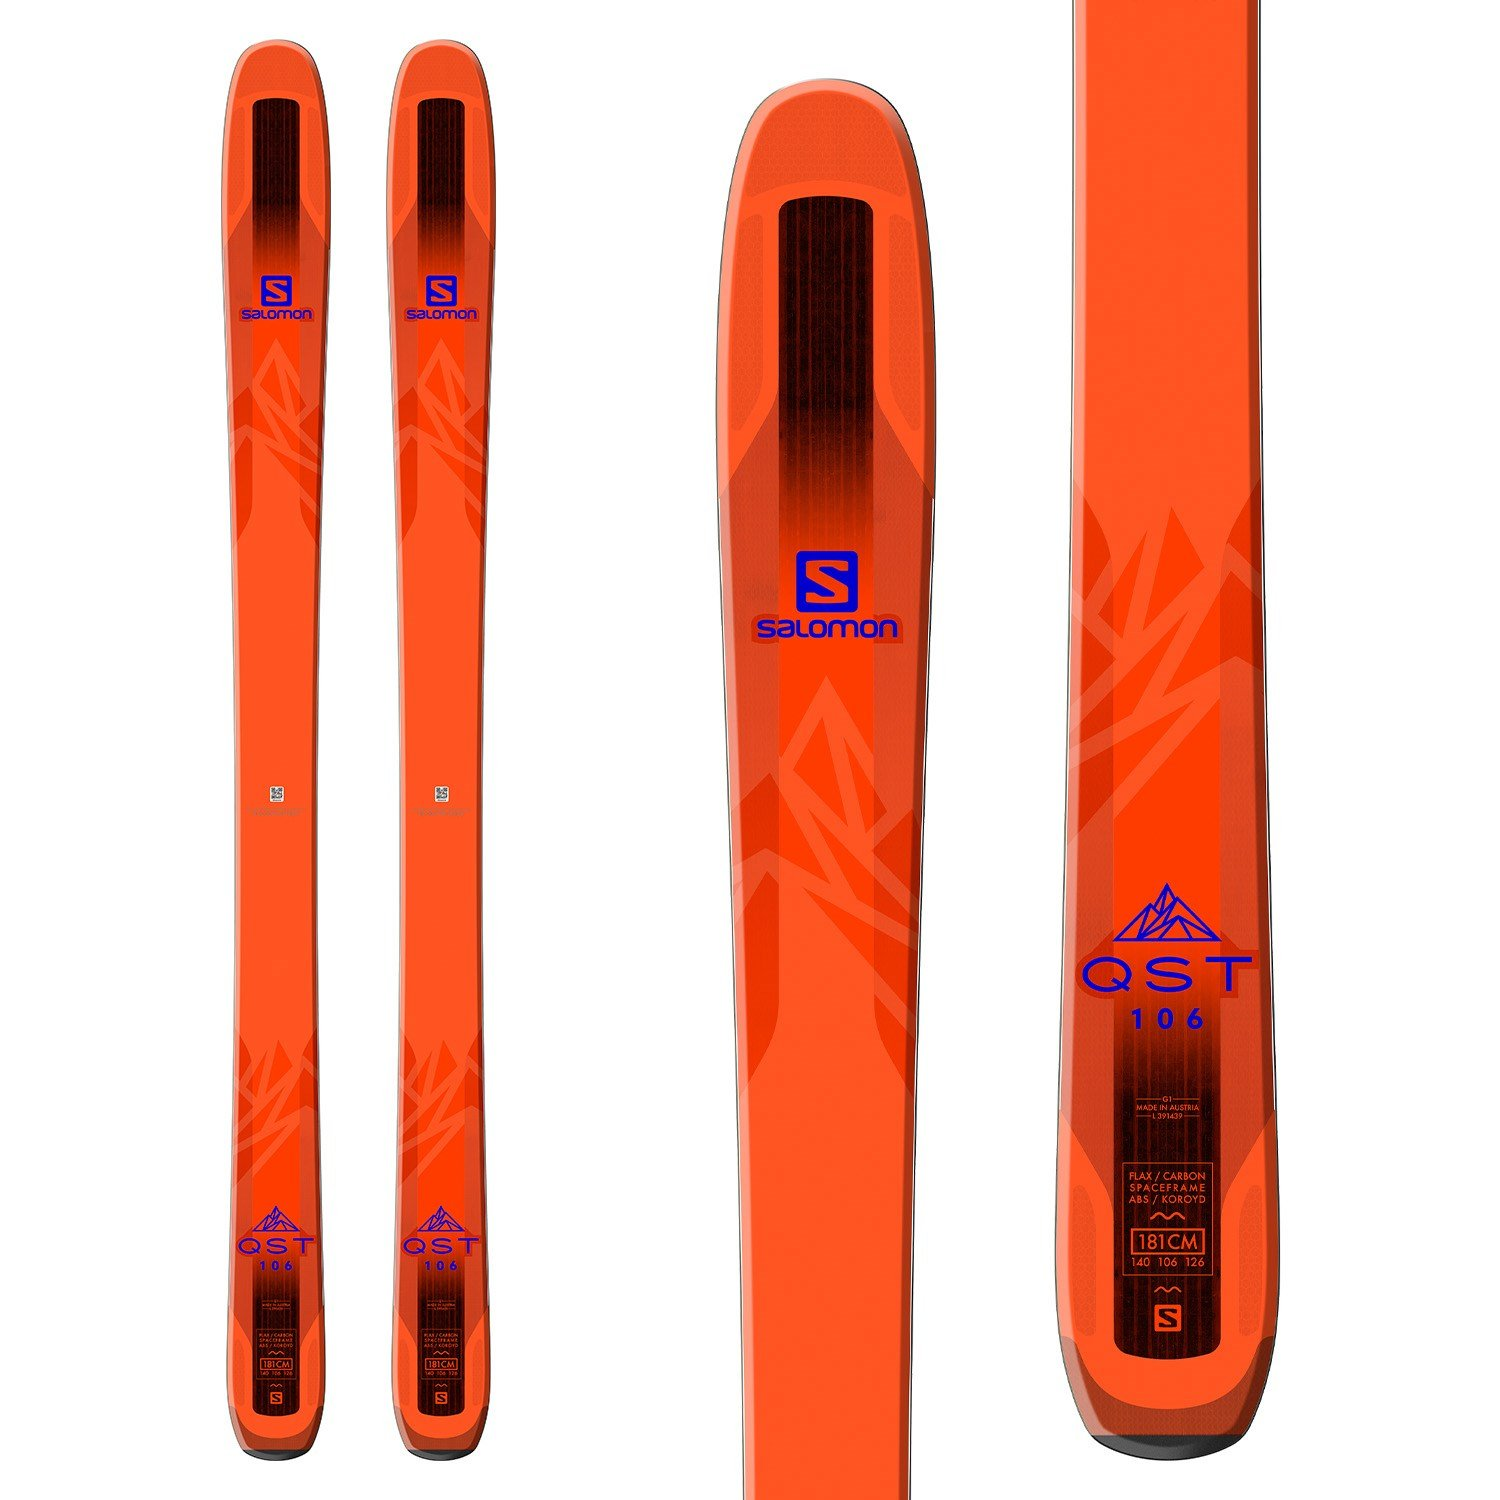 Salomon QST 106 w/ Salomon Warden MNC 13 Binding - Abom Ski & Board |  Calgary's Snow and Watersports Destination